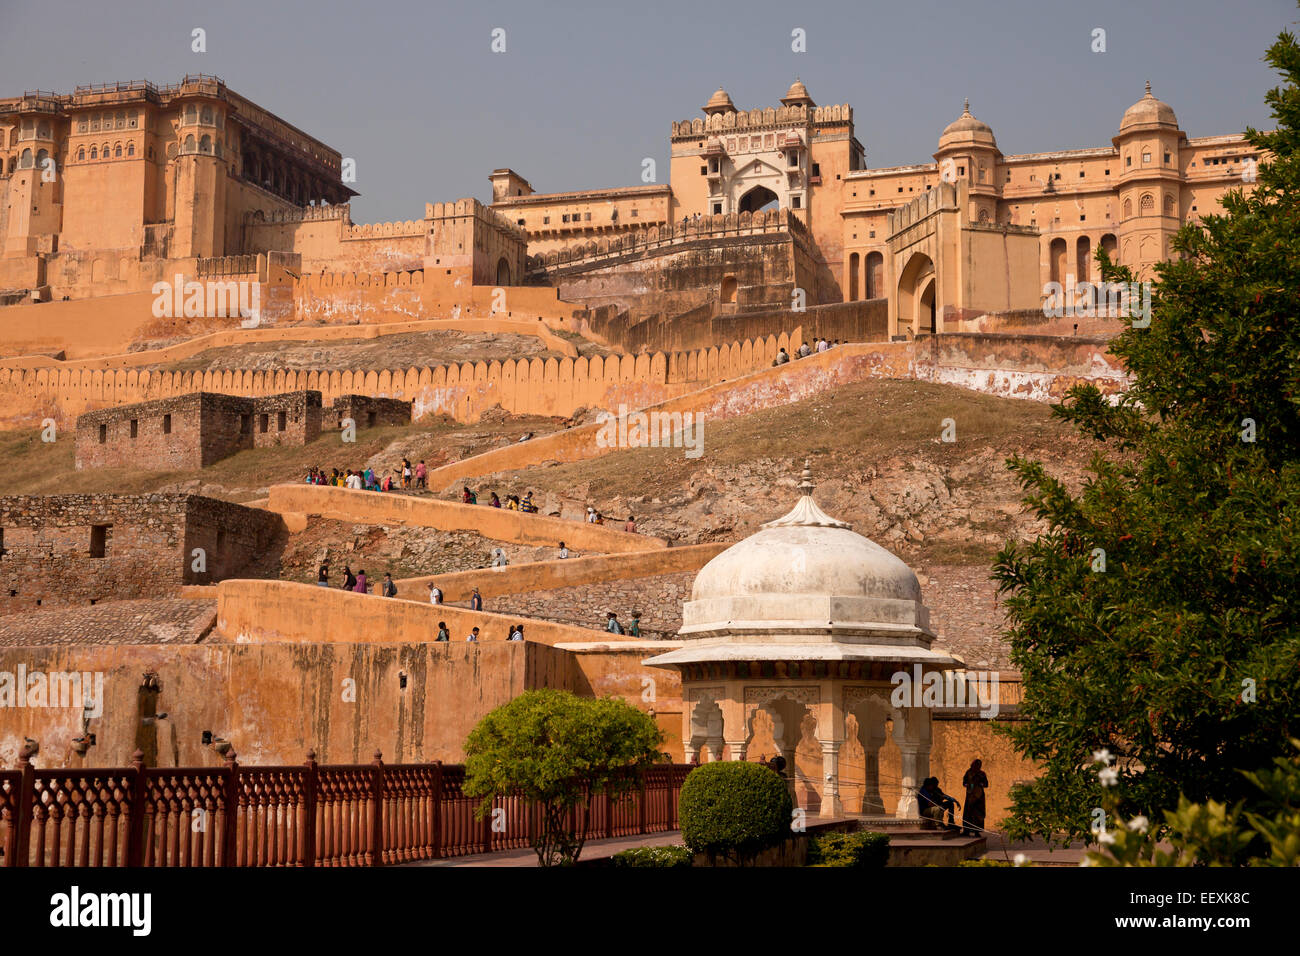 Fort Amber, Jaipur, Rajasthan, Inde Photo Stock